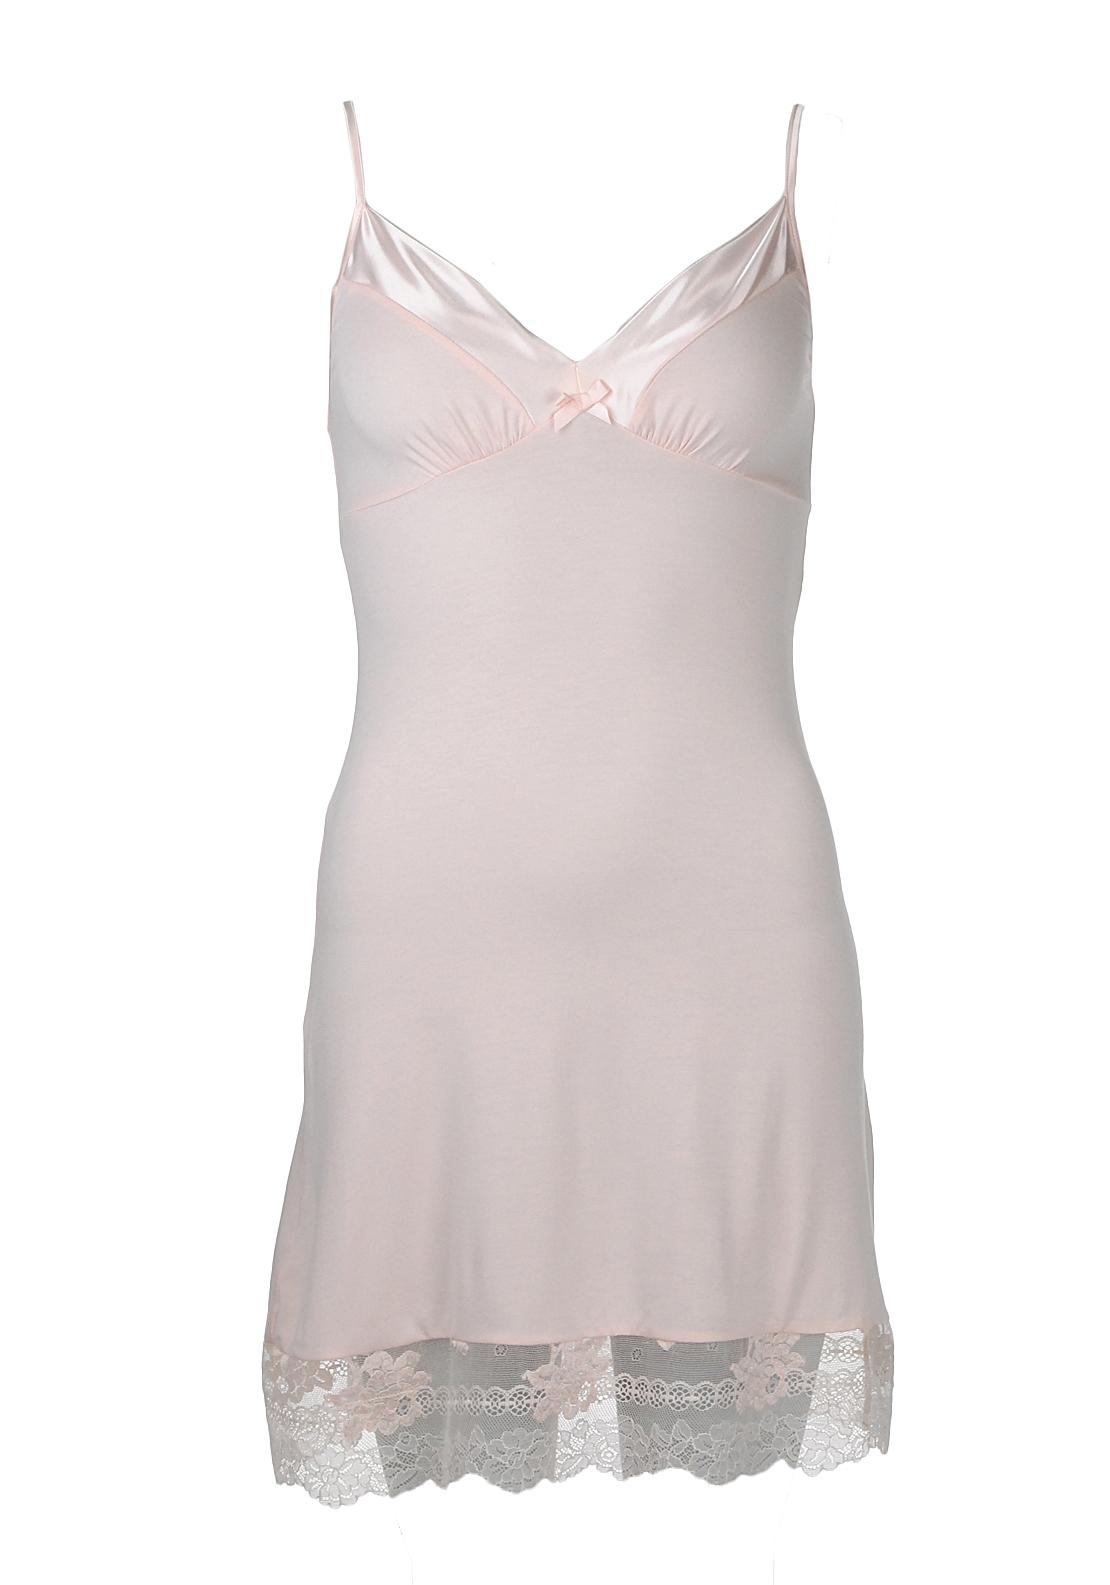 Vanilla Night & Day Chemise, Peach